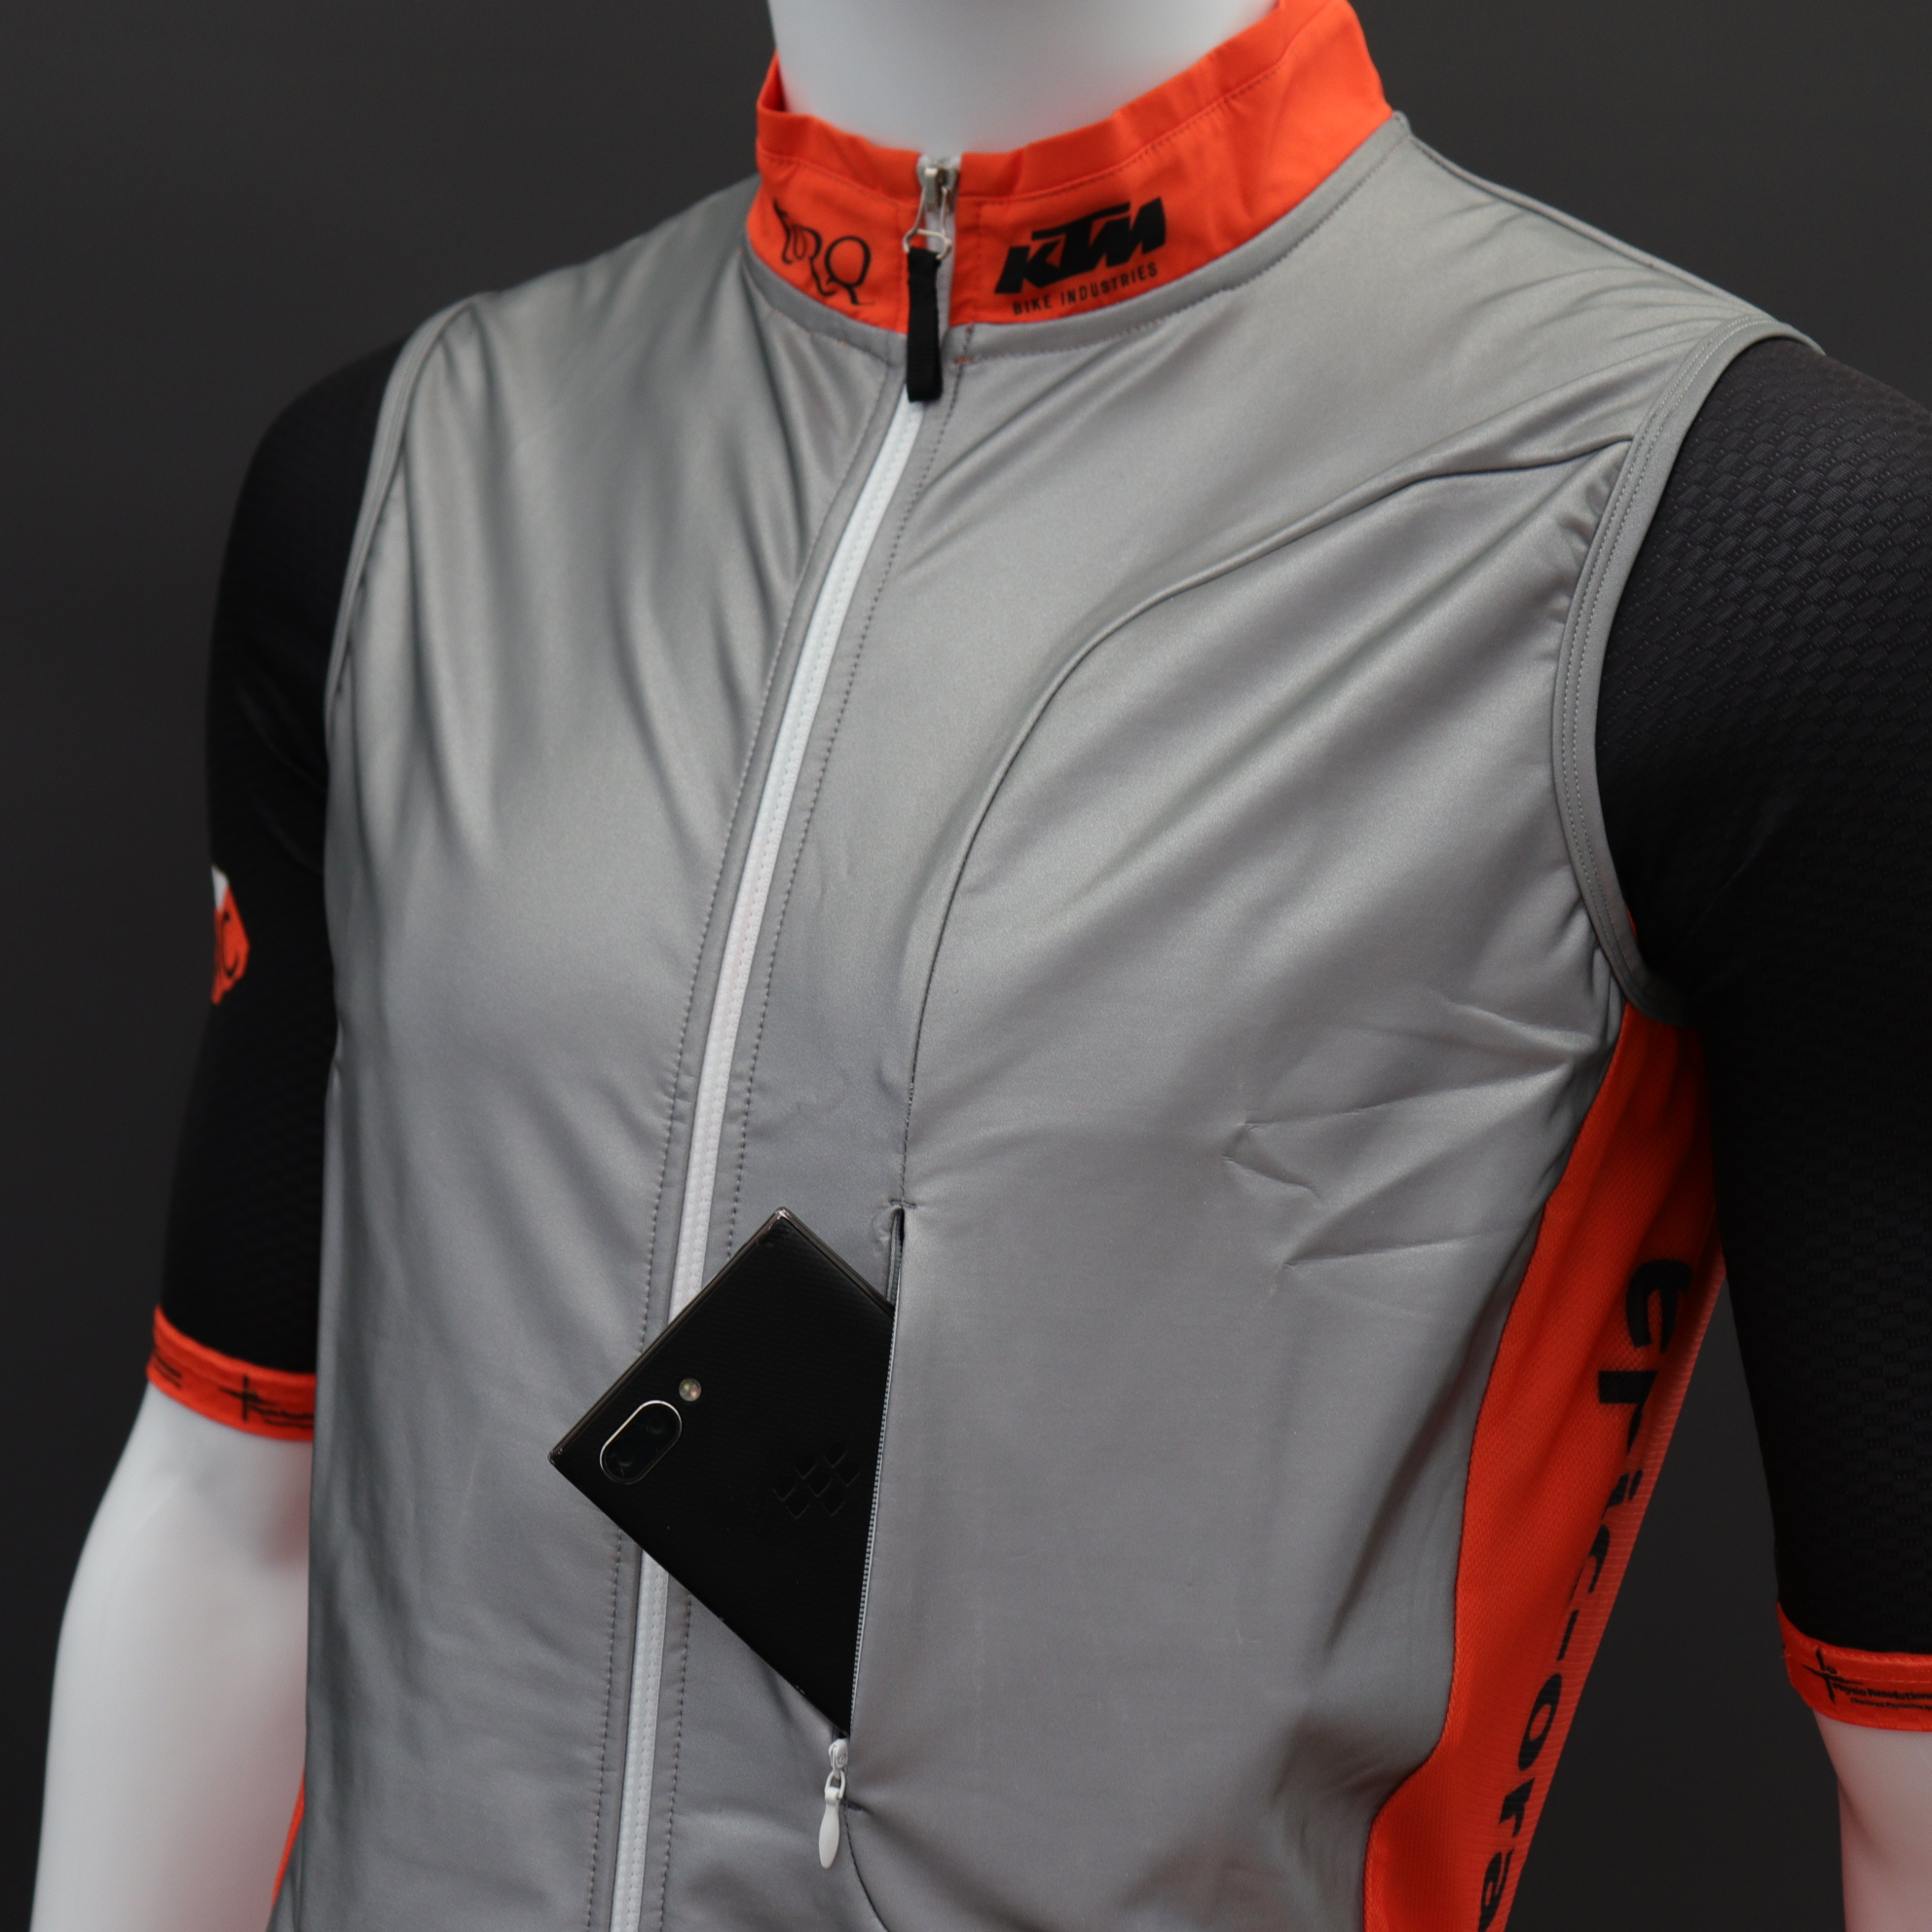 Reflective Cycle Gilets Zipped Chest Pocket